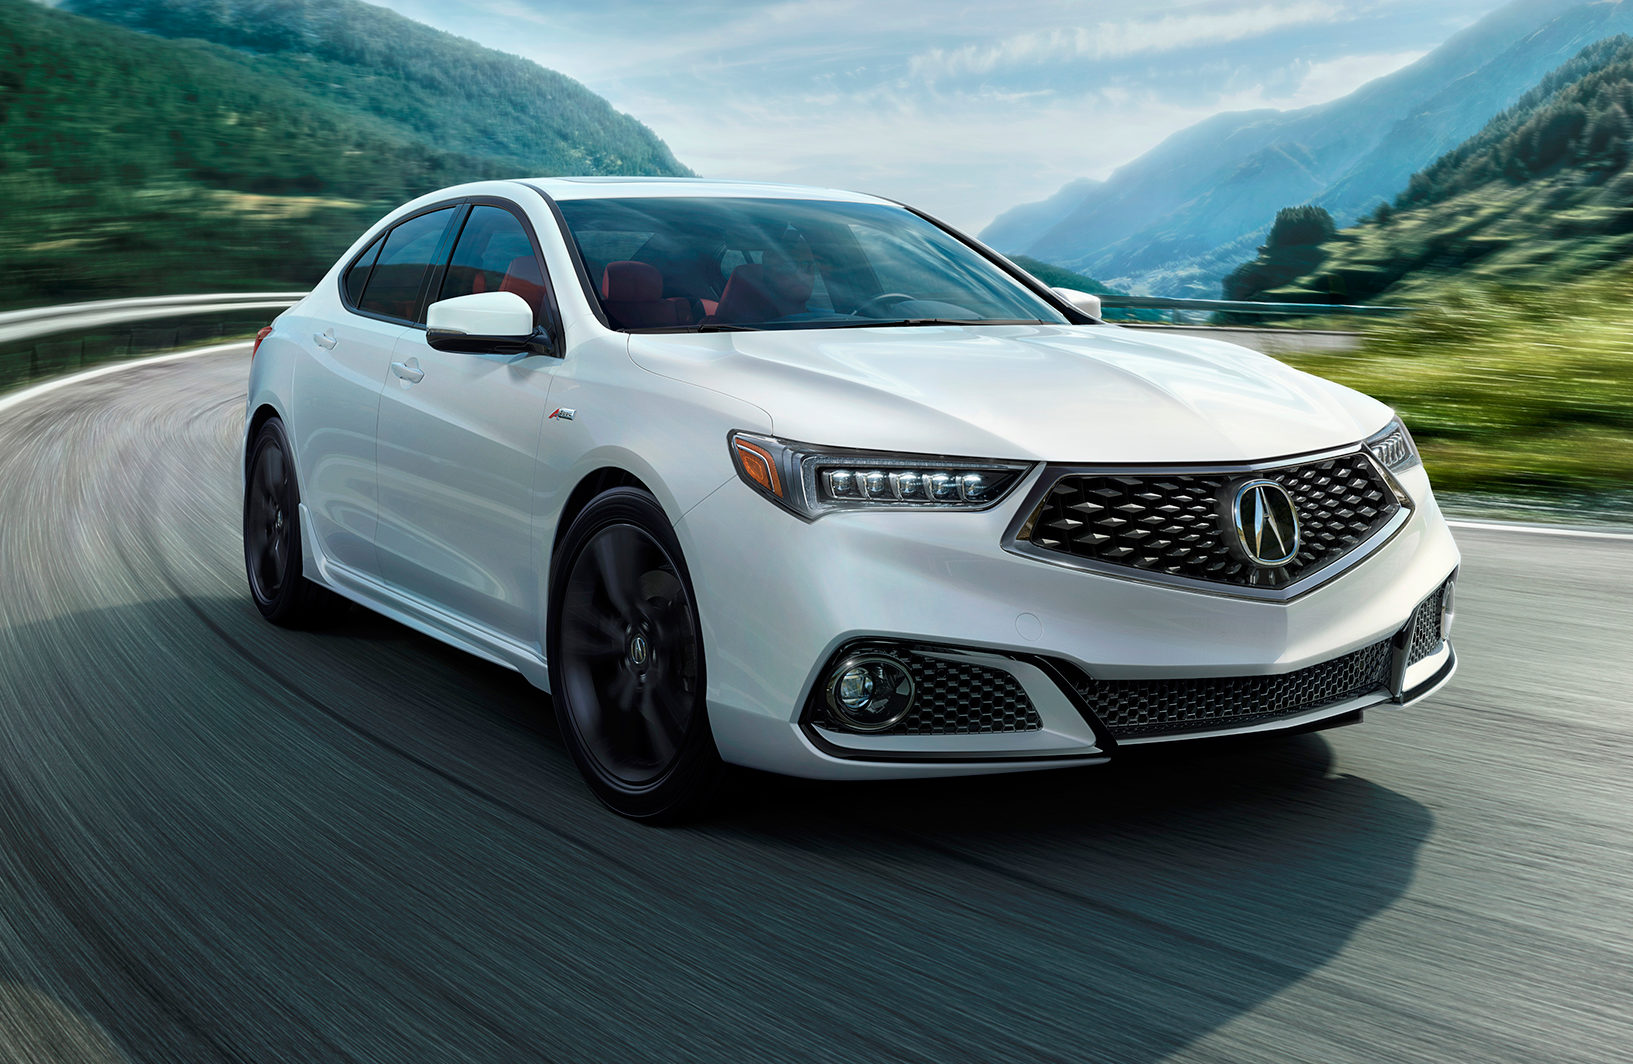 Sibling Rivalry All-New 2018 Honda Accord ($416/Month) vs Acura